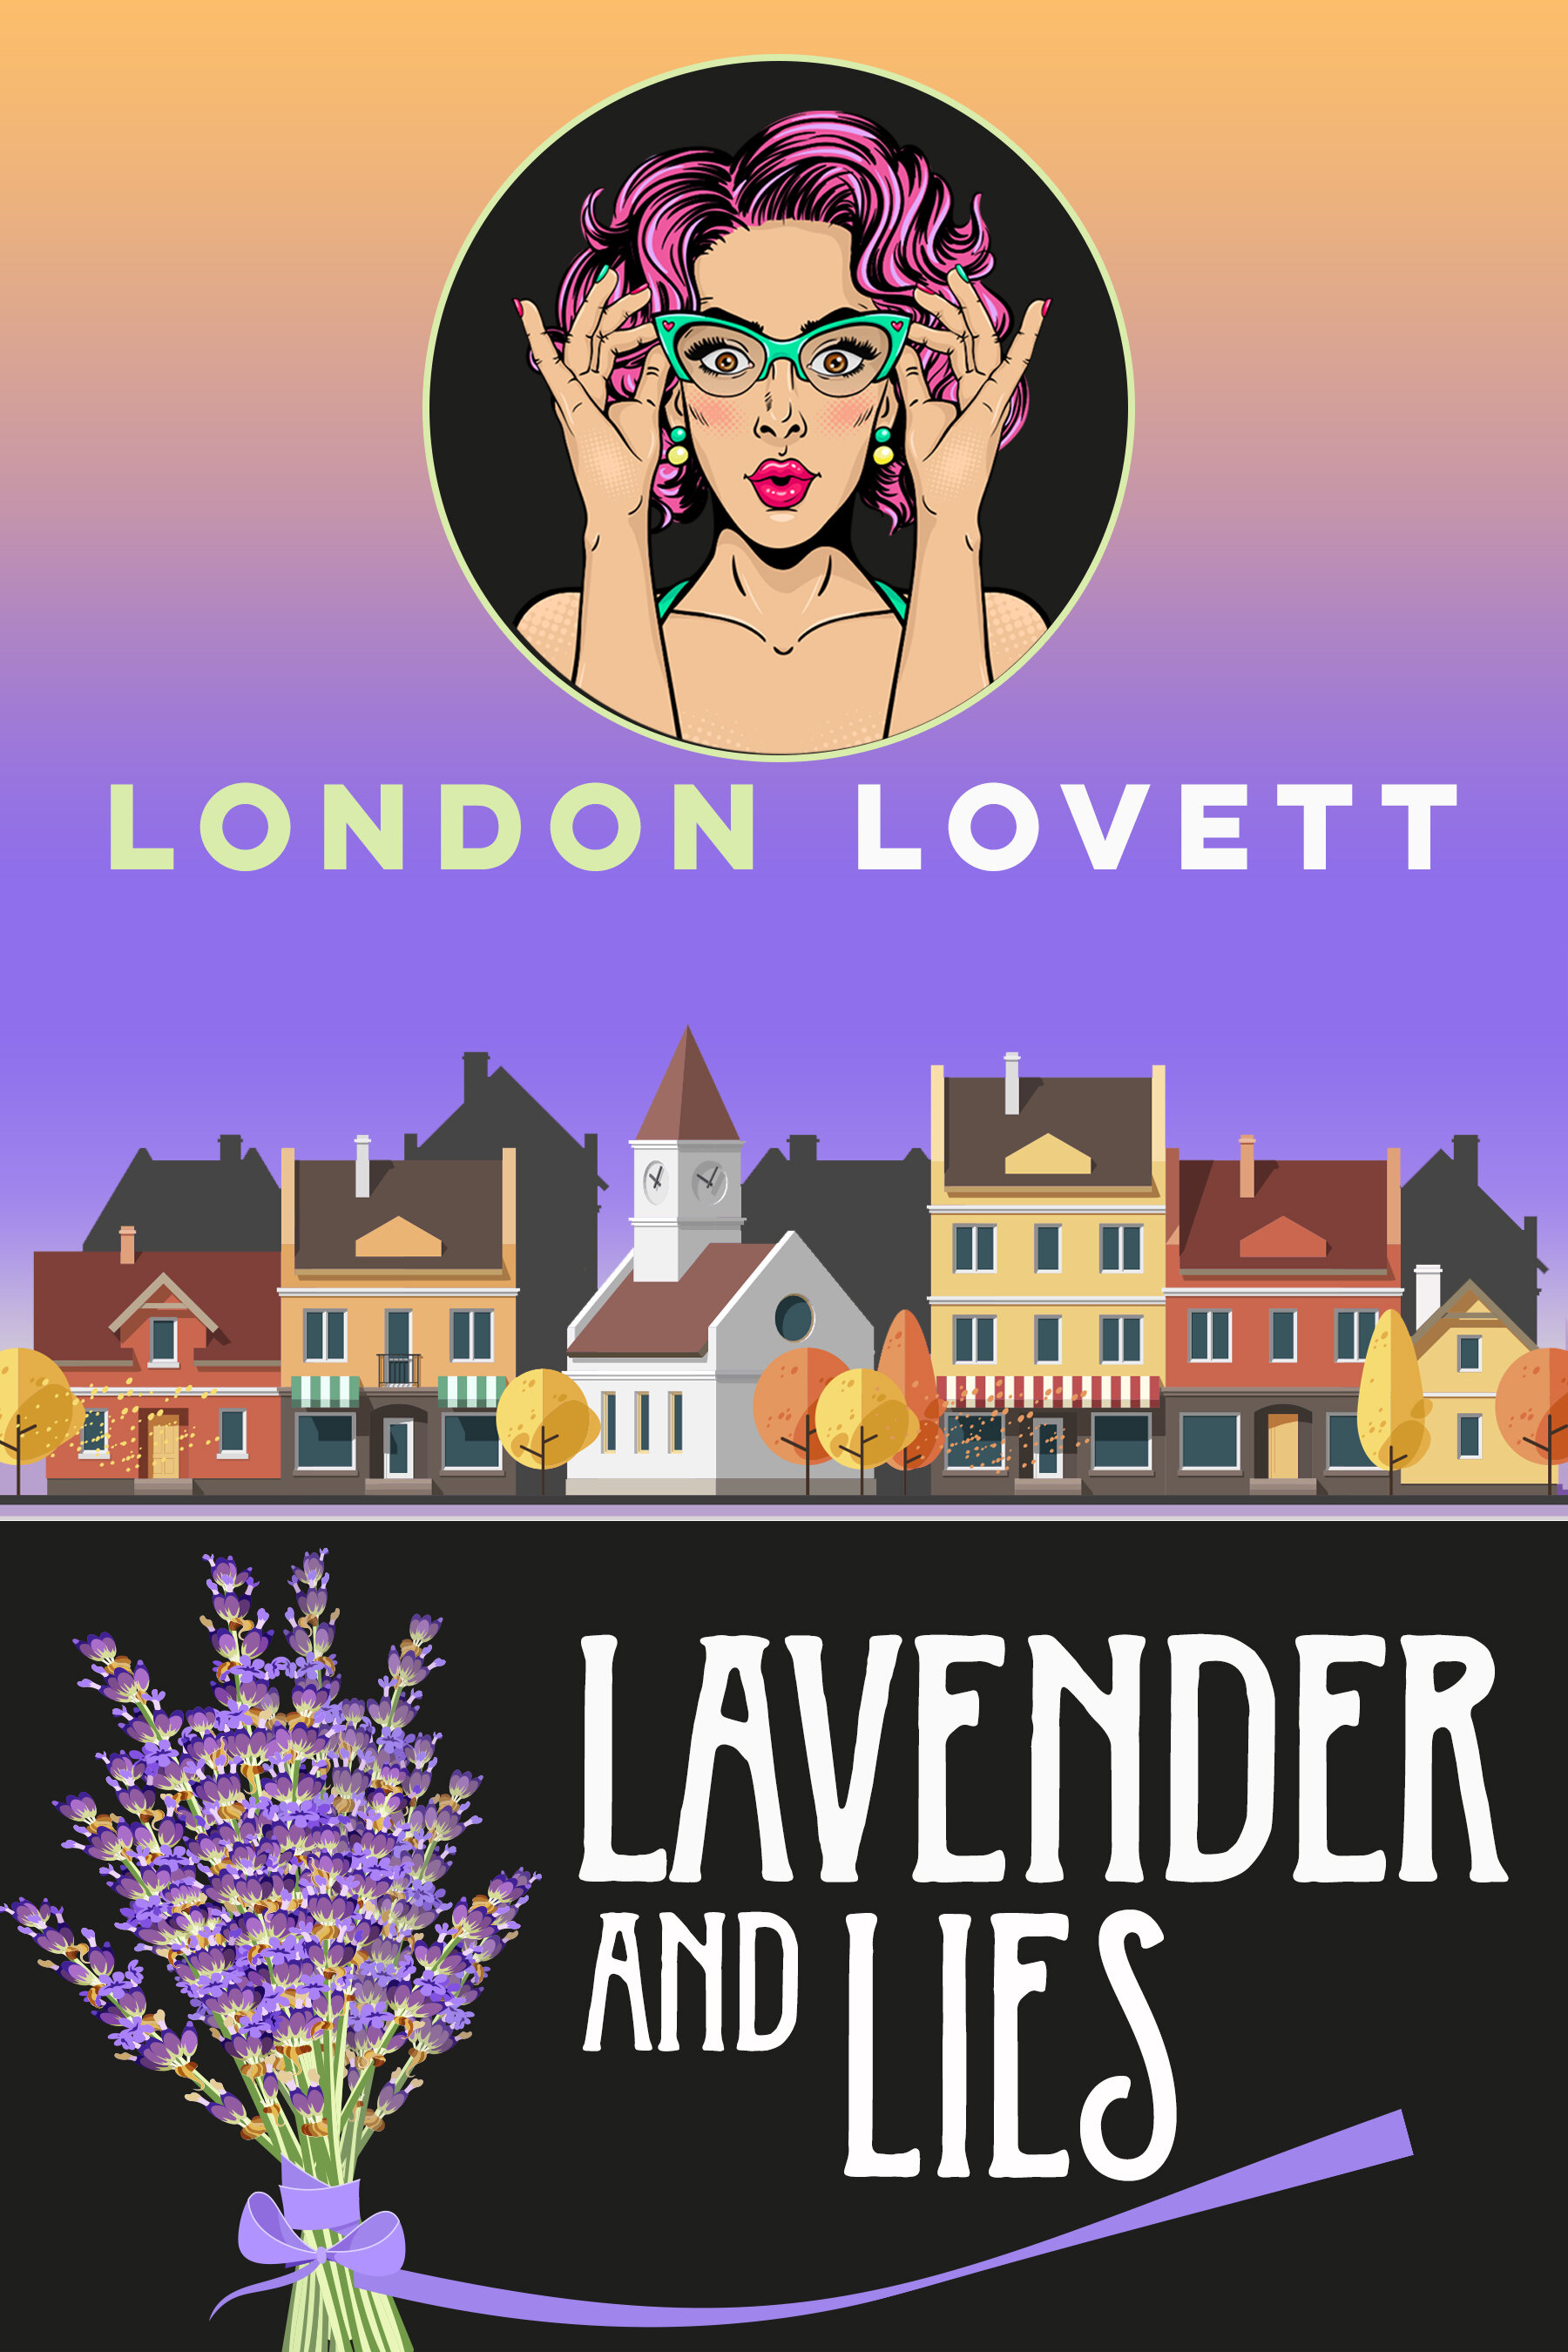 Lavender and Lies - There's a new man in town, Lionel Dexter, an eligible, handsome bachelor who has taken up residence in a Chesterton mansion. He quickly wins over many hearts, including Kate Yardley's, the stylish, man crazy owner of the Mod Frock Boutique. Much to everyone's chagrin, it turns out Lionel is quite the scoundrel. Soon, jealousy and heartbreak flood the town. When the town's newest hot commodity winds up dead, Lacey joins her boyfriend, Detective Briggs on a quest to find the killer. Could it be a jilted lover or was there more to Lionel than broad shoulders, graying temples and a blinding white smile?Releases everywhere November 11Pre-order on: Amazon iBooks Nook Kobo